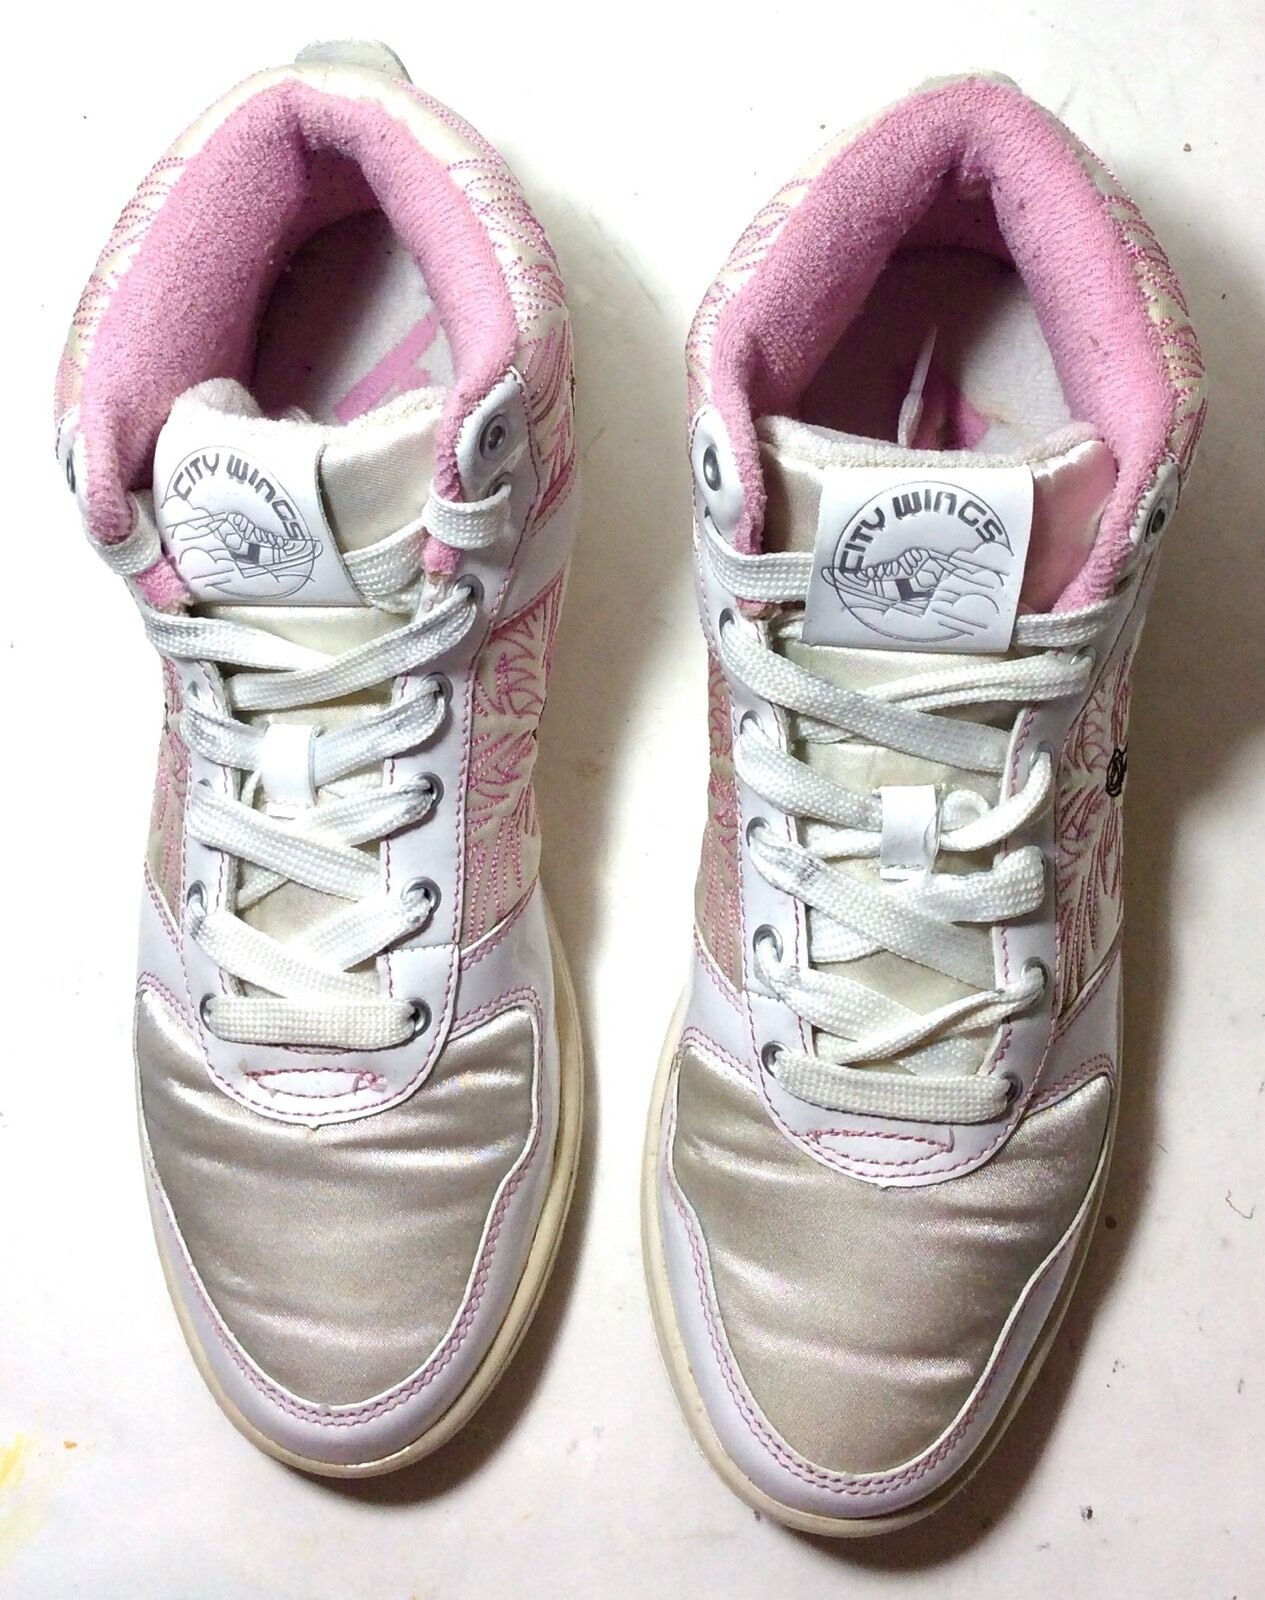 Pony Women's City Wings Cosmo Mid Shoes ( White/ White/ Pink) Size 9.5